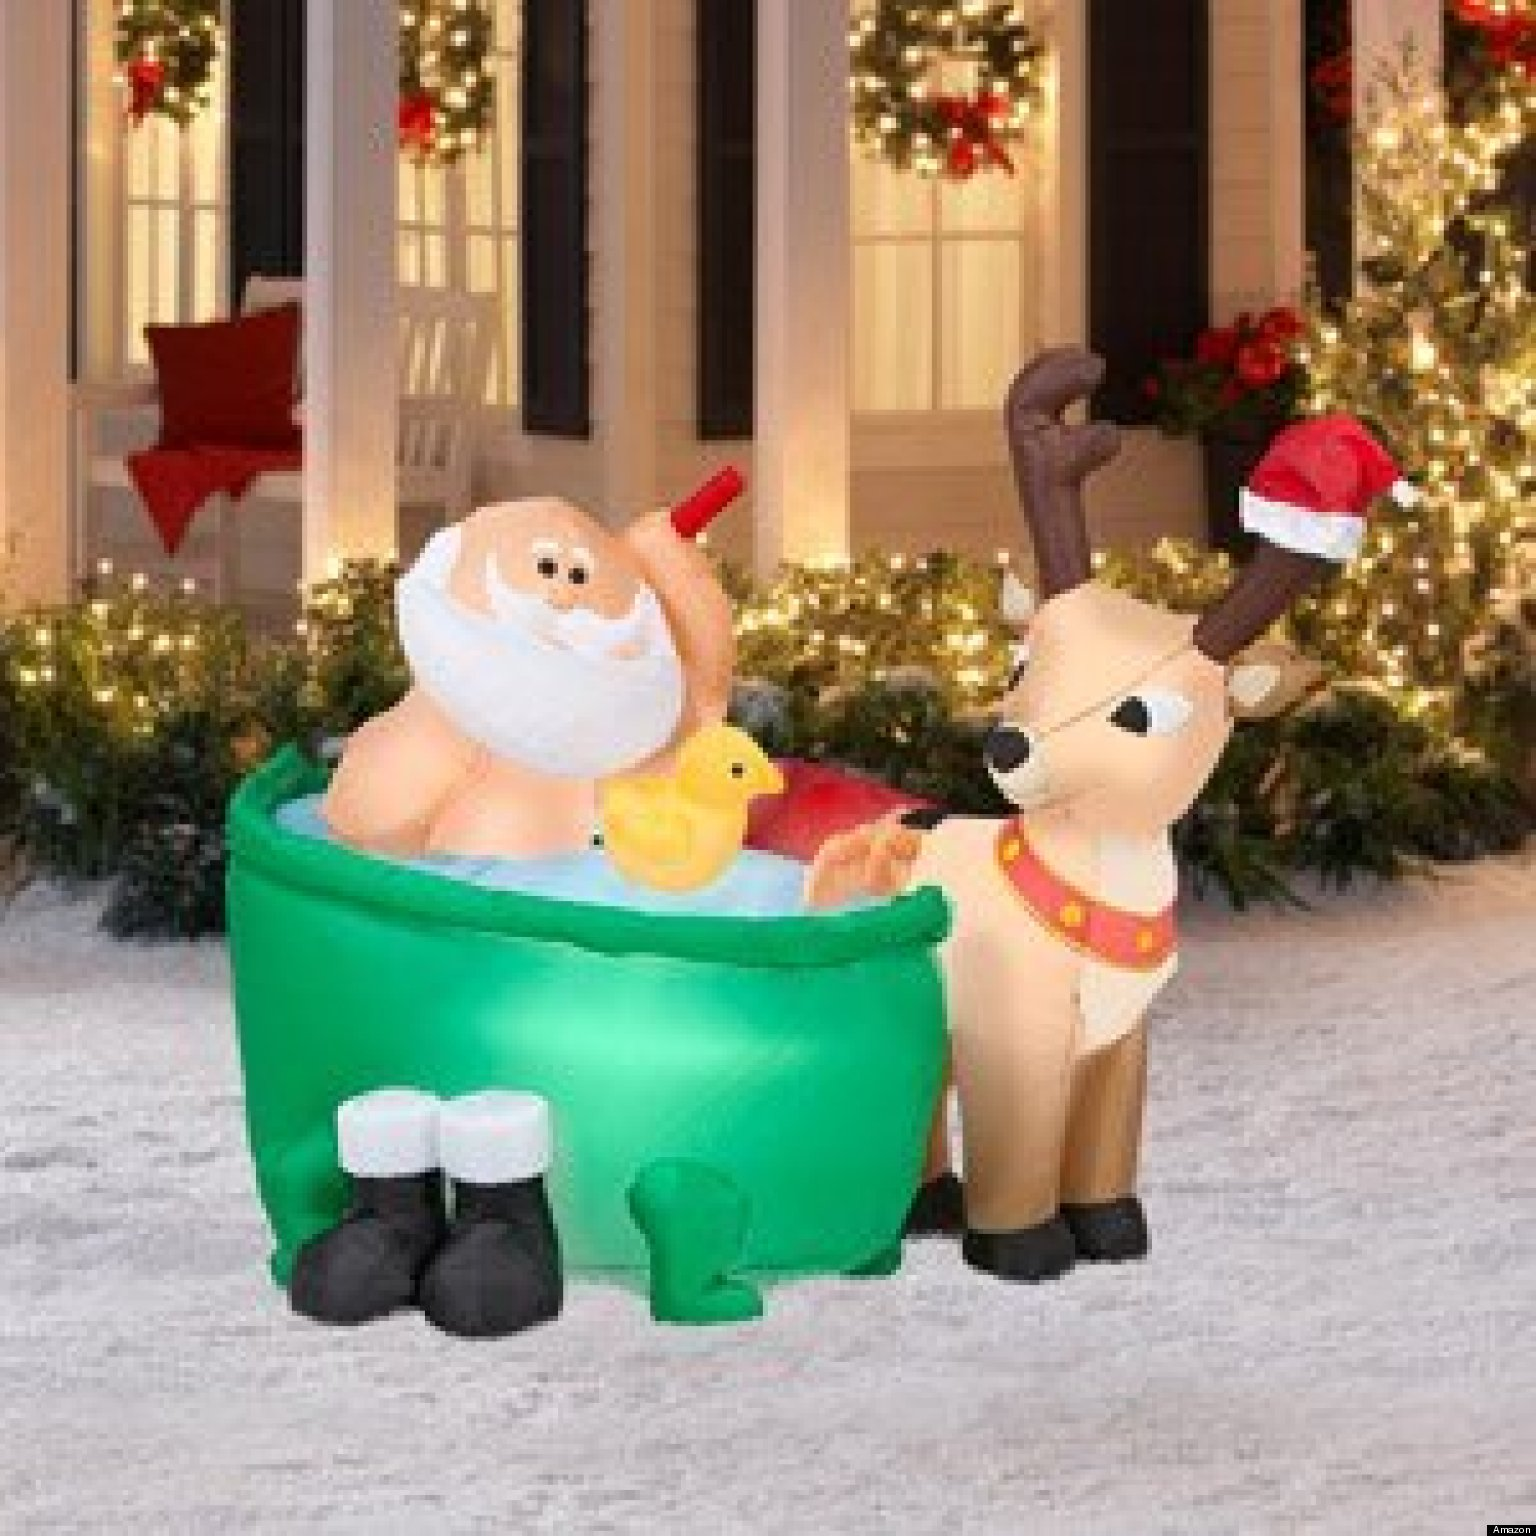 Worst Inflatable Christmas Decorations (PHOTOS